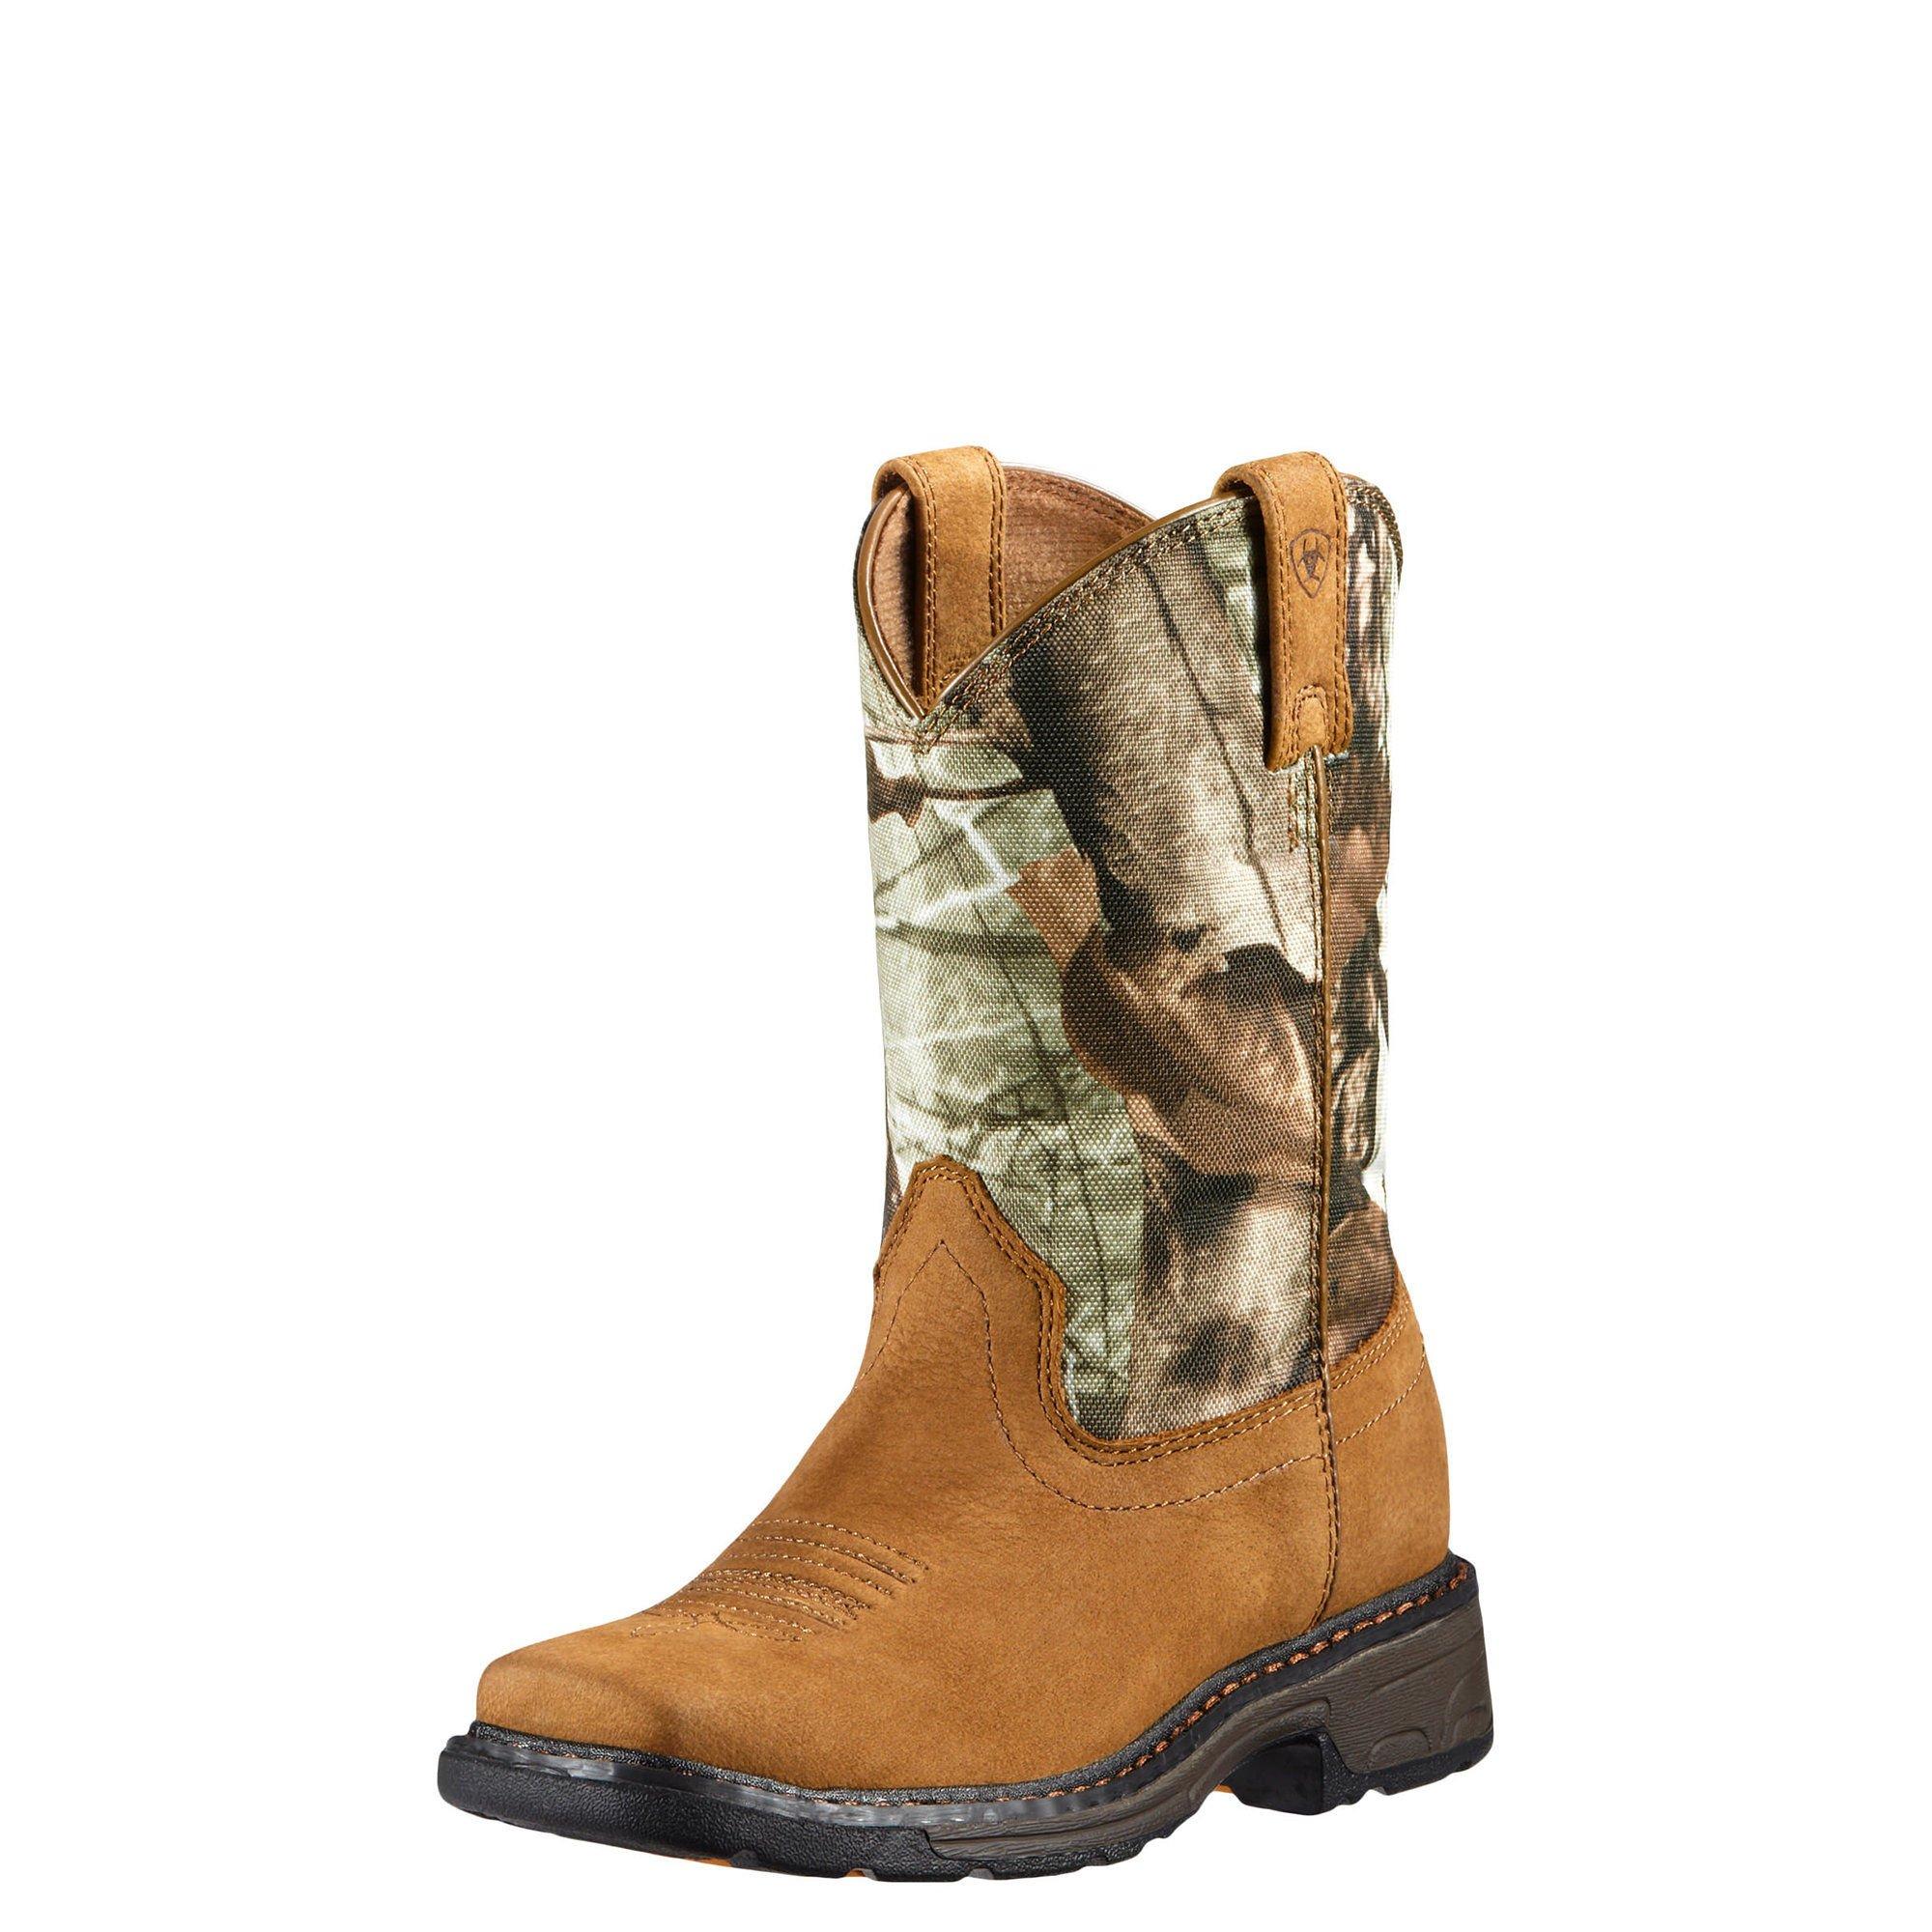 Kids' Workhog Wide Square Toe Western Cowboy Boot, Aged Bark/Camo, 11.5 M US Toddler by Ariat